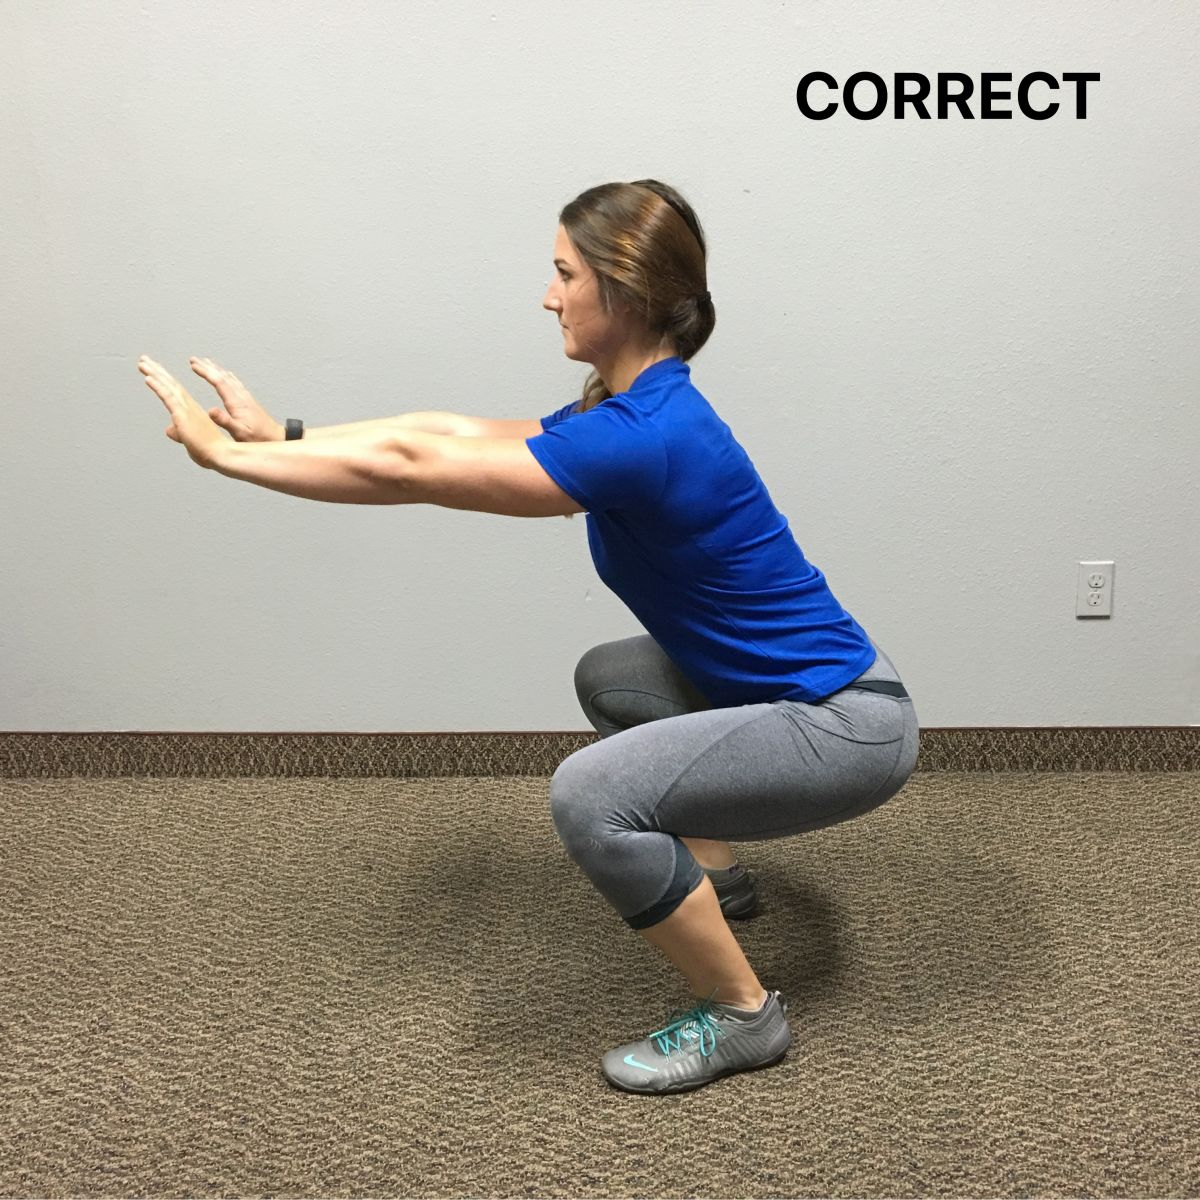 sideview of correct squat position